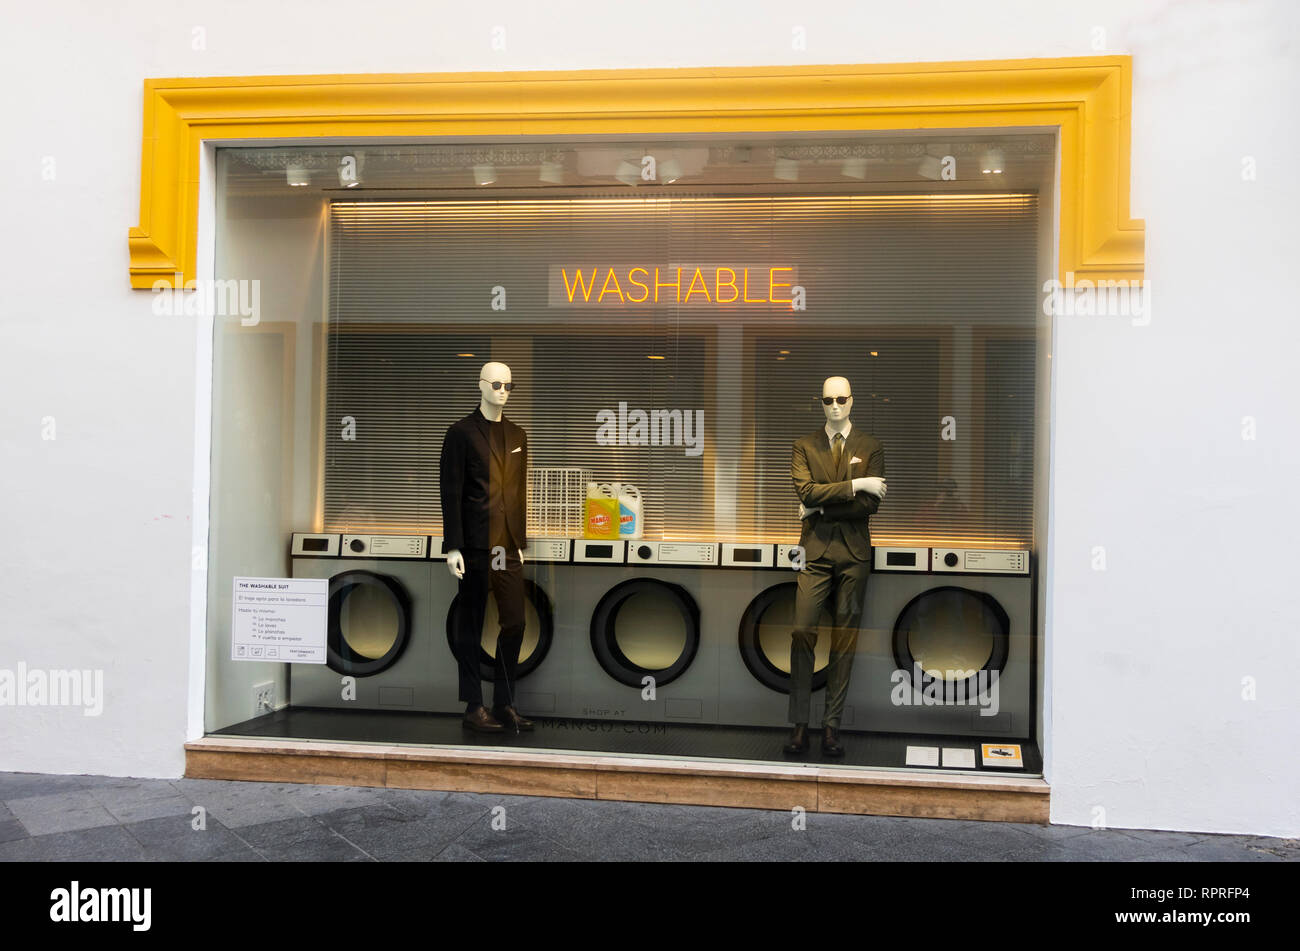 Window display featuring washable men's suits in Seville, Spain - Stock Image